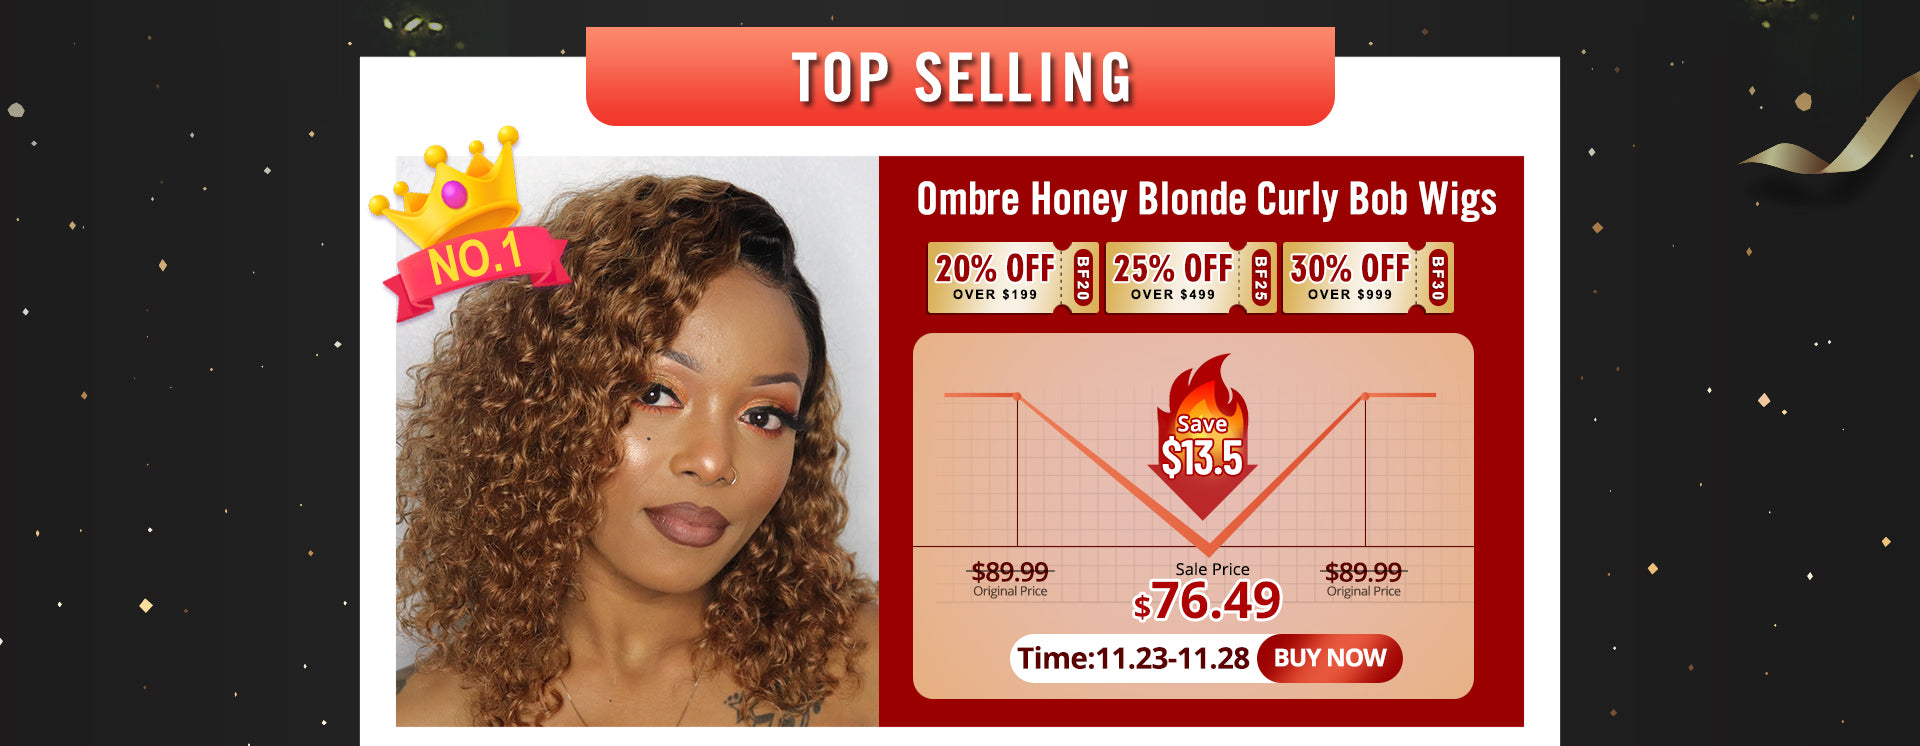 Ombre Honey Blonde Curly Bob Wigs